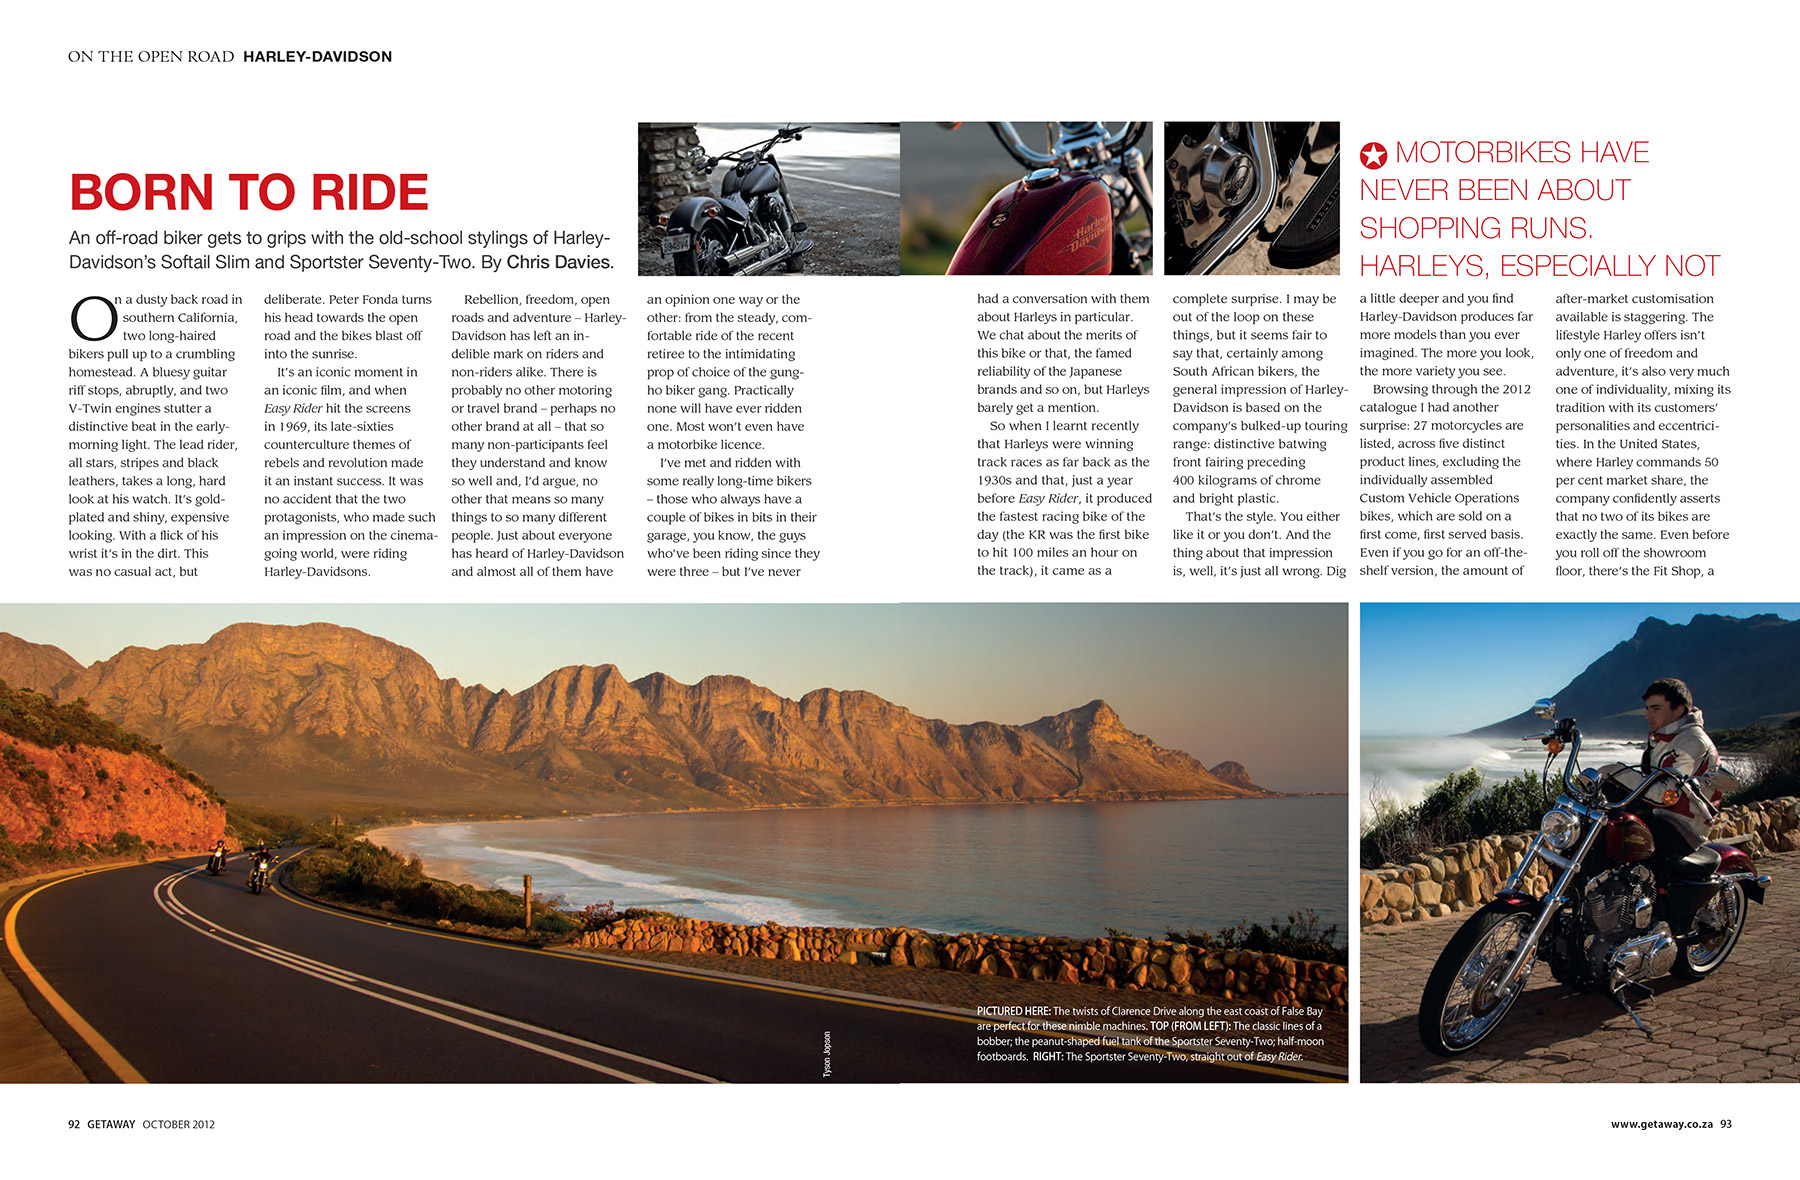 Getaway Magazine - Riding the latest Harleys on some of Cape Town's most beautiful roads.